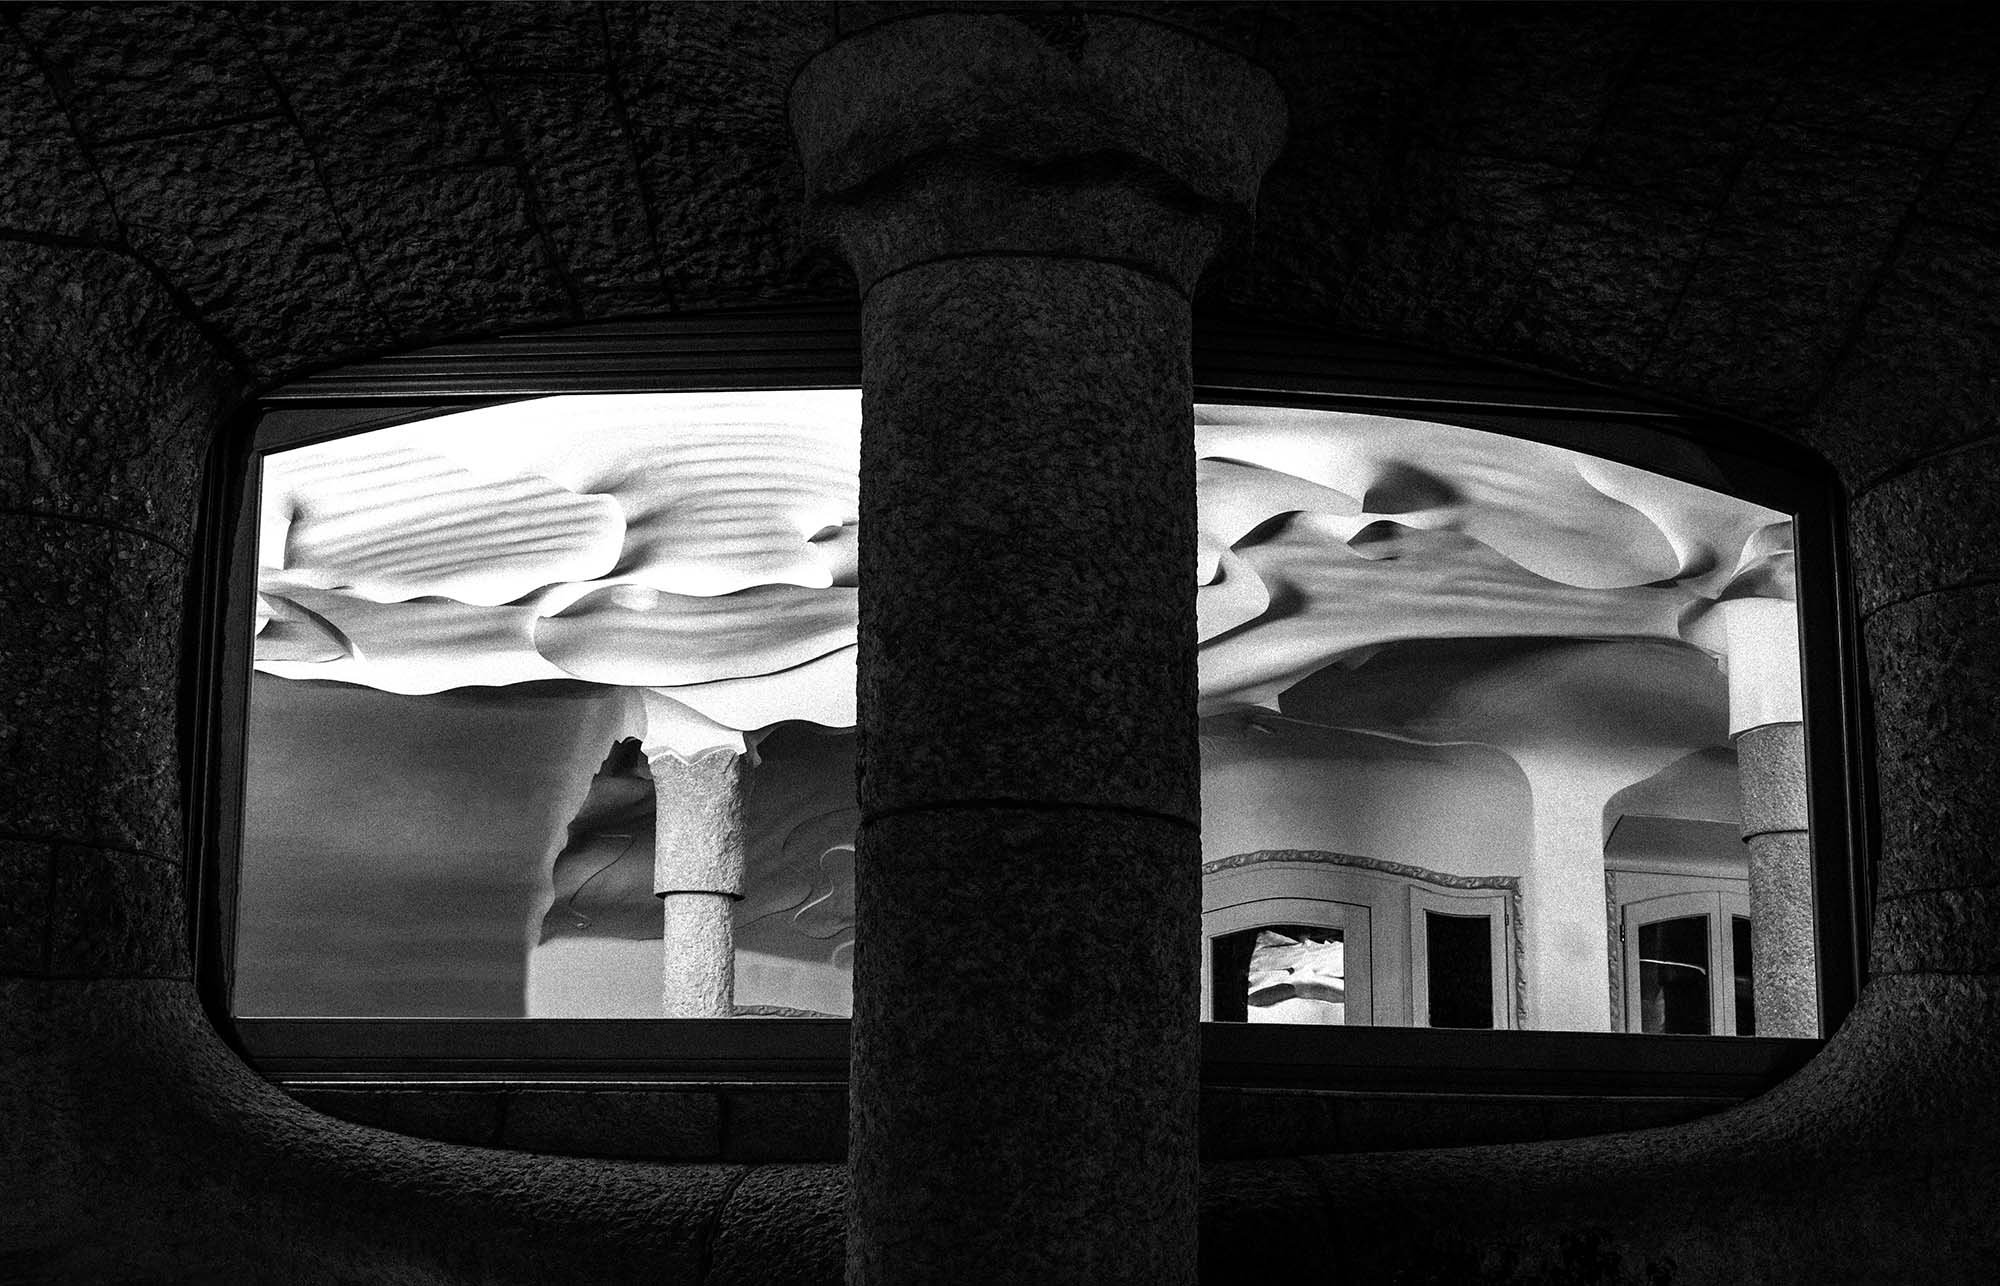 Views of a stone sea,gaudí,jujol,lapedrera